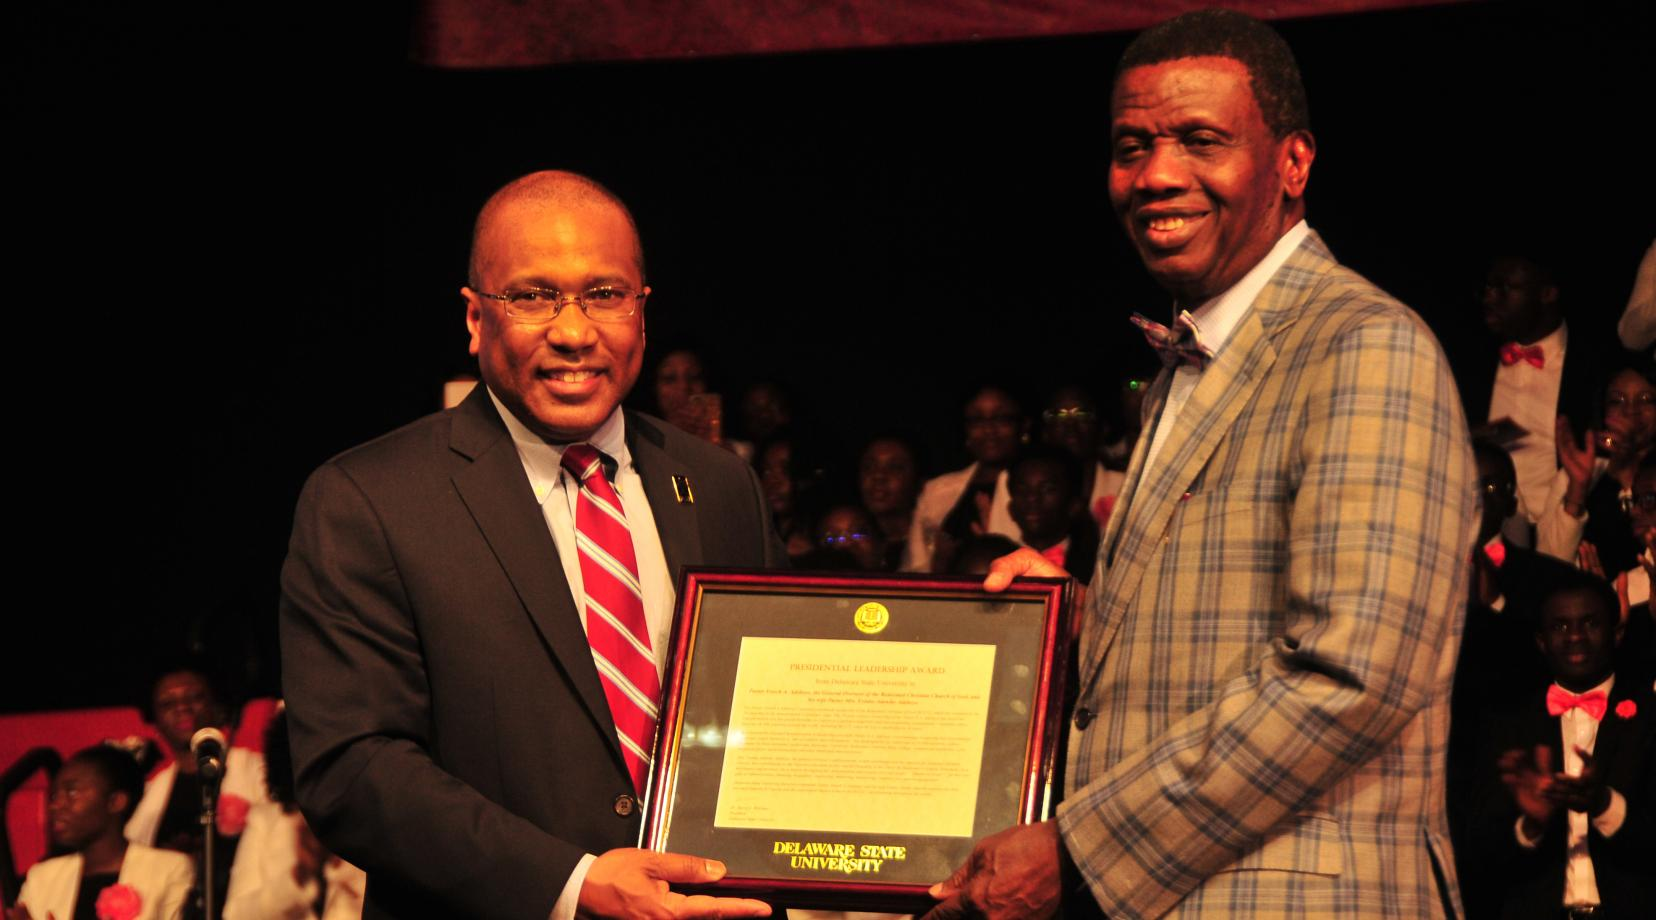 <p>DSU President Harry L. Williams presents Enoch A. Adeboye, worldwide general overseer of the Redeemed Christian Church of God, with the President's Leadership Award during the denomination's Holy Ghost Festival of LIfe held at DSU on Feb. 24.</p>